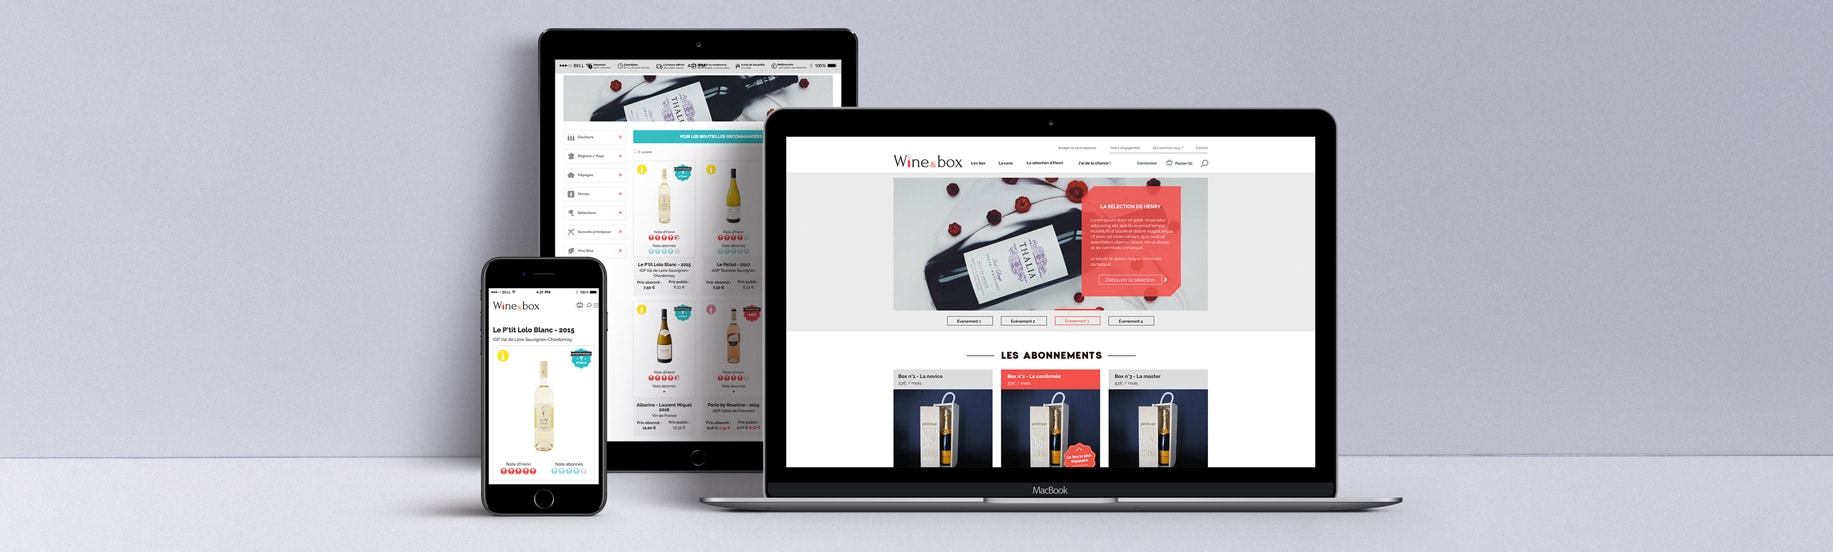 Version mobile et ordinateur du site Wine & Box